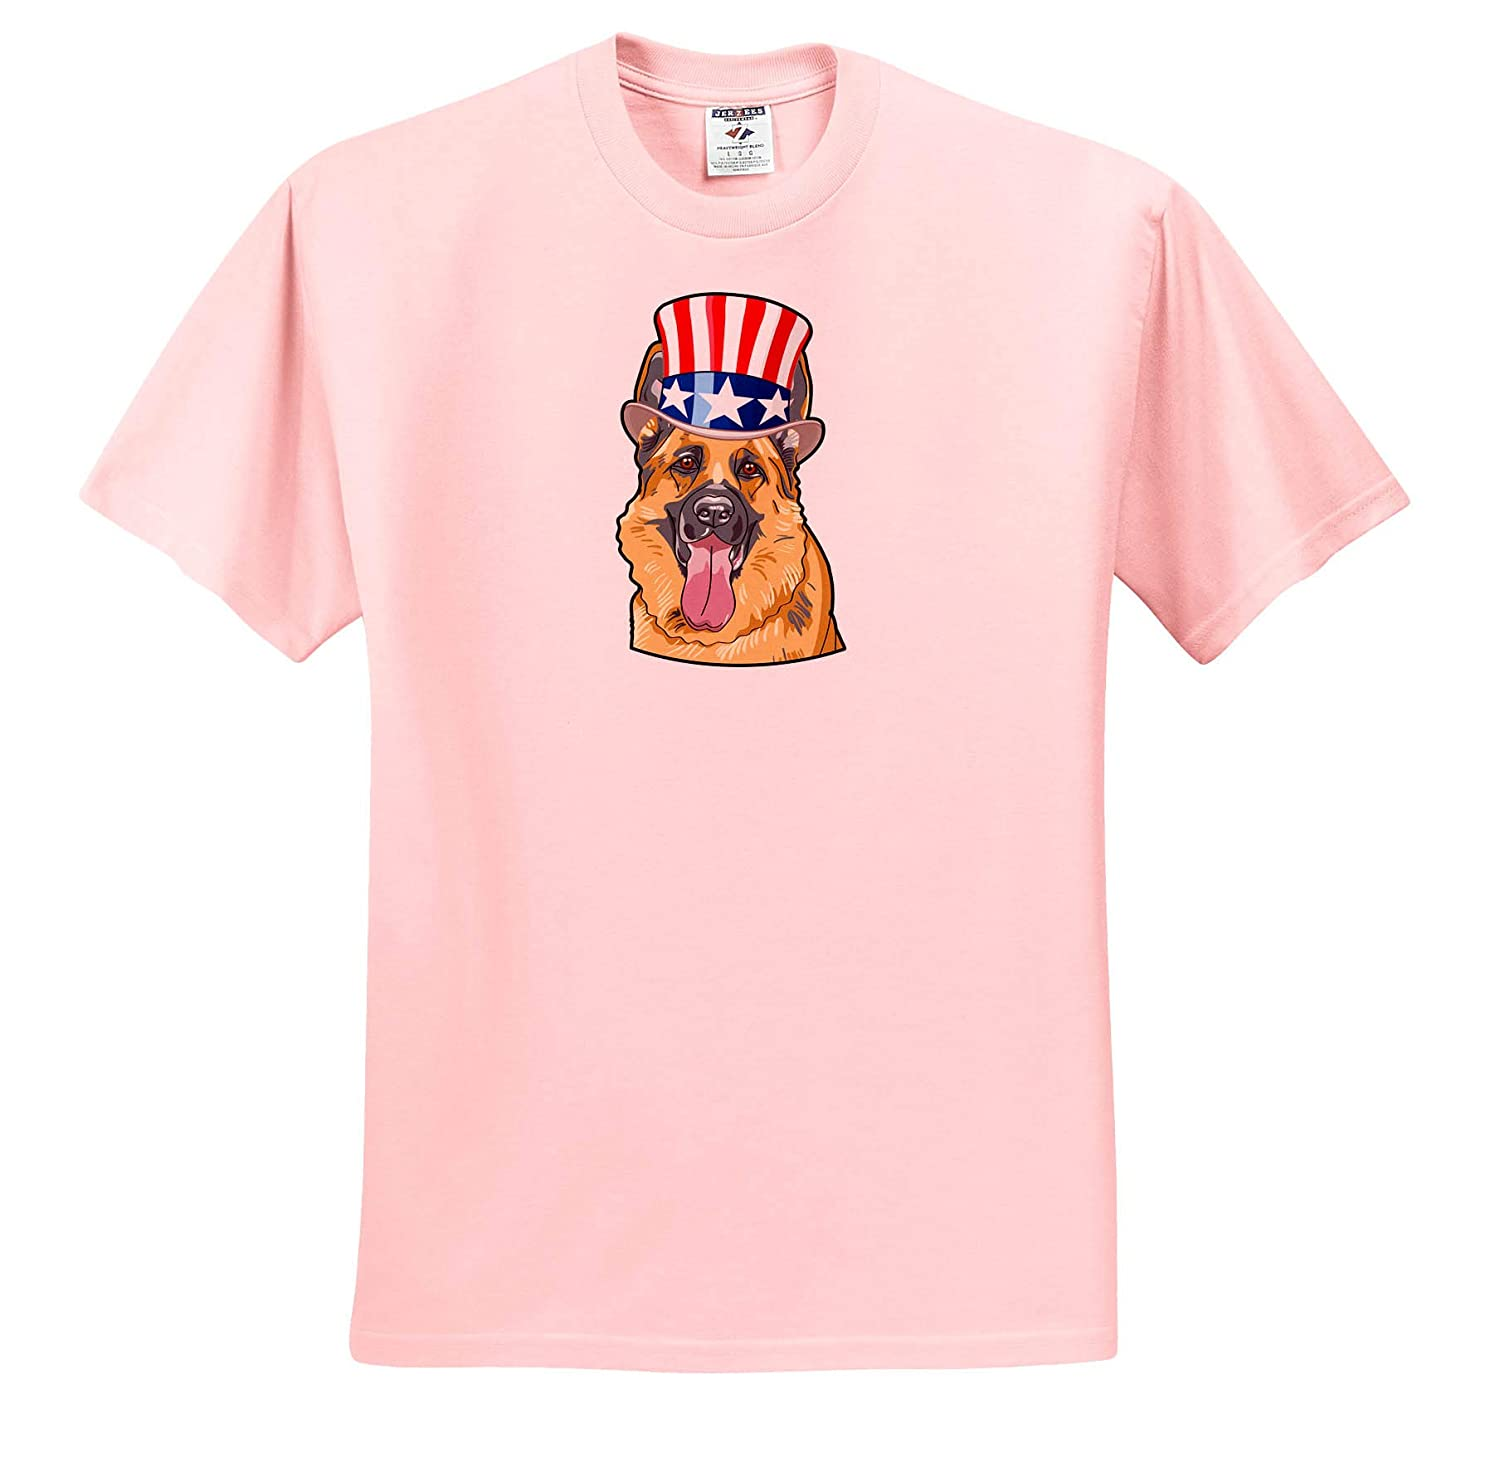 Pug Wearing top hat with American Flag on it T-Shirts 3dRose Patriotic American Dogs